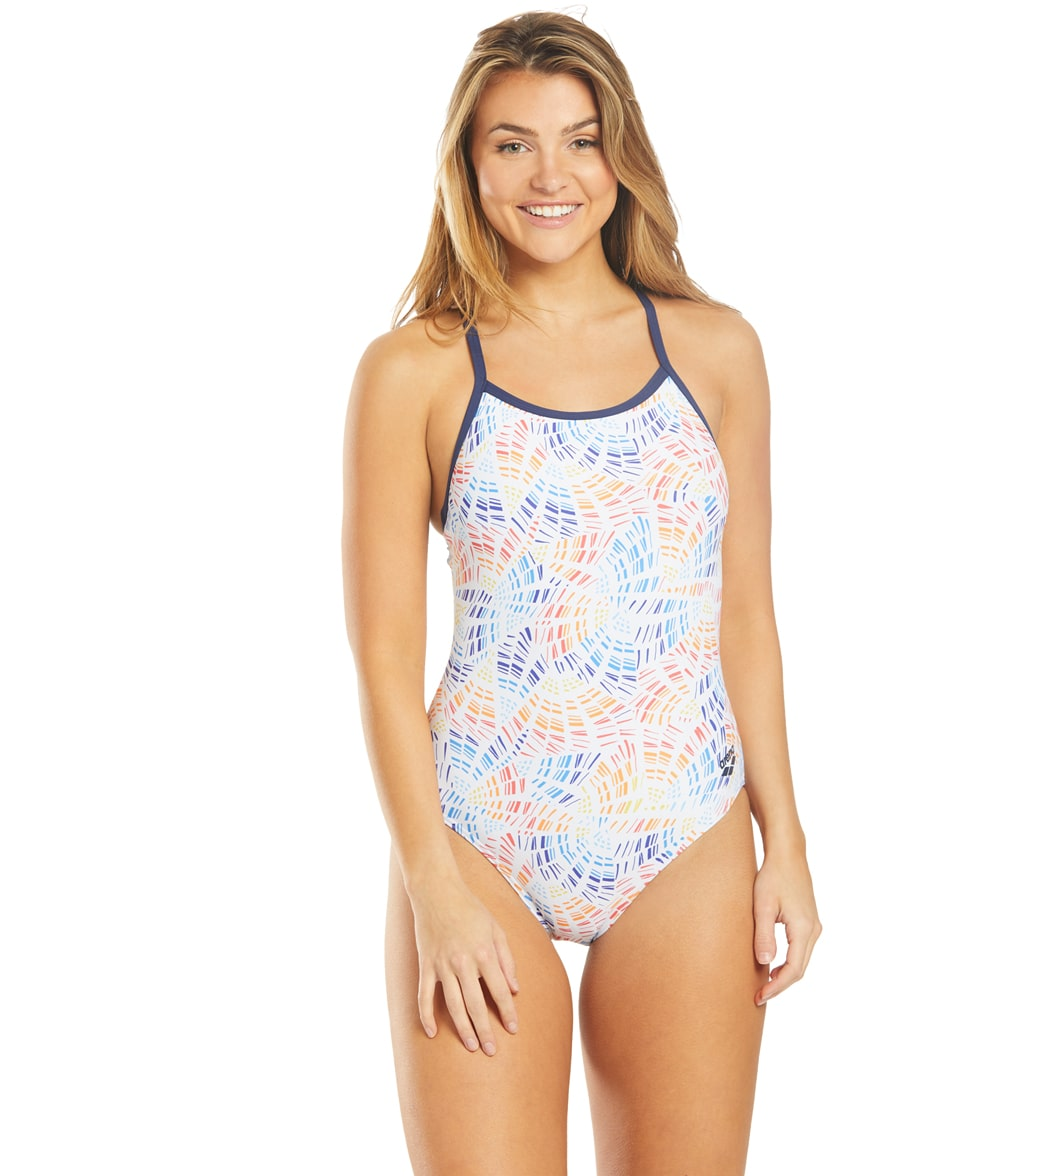 Arena Women's Abstract Mosaic Light Drop One Piece Swimsuit